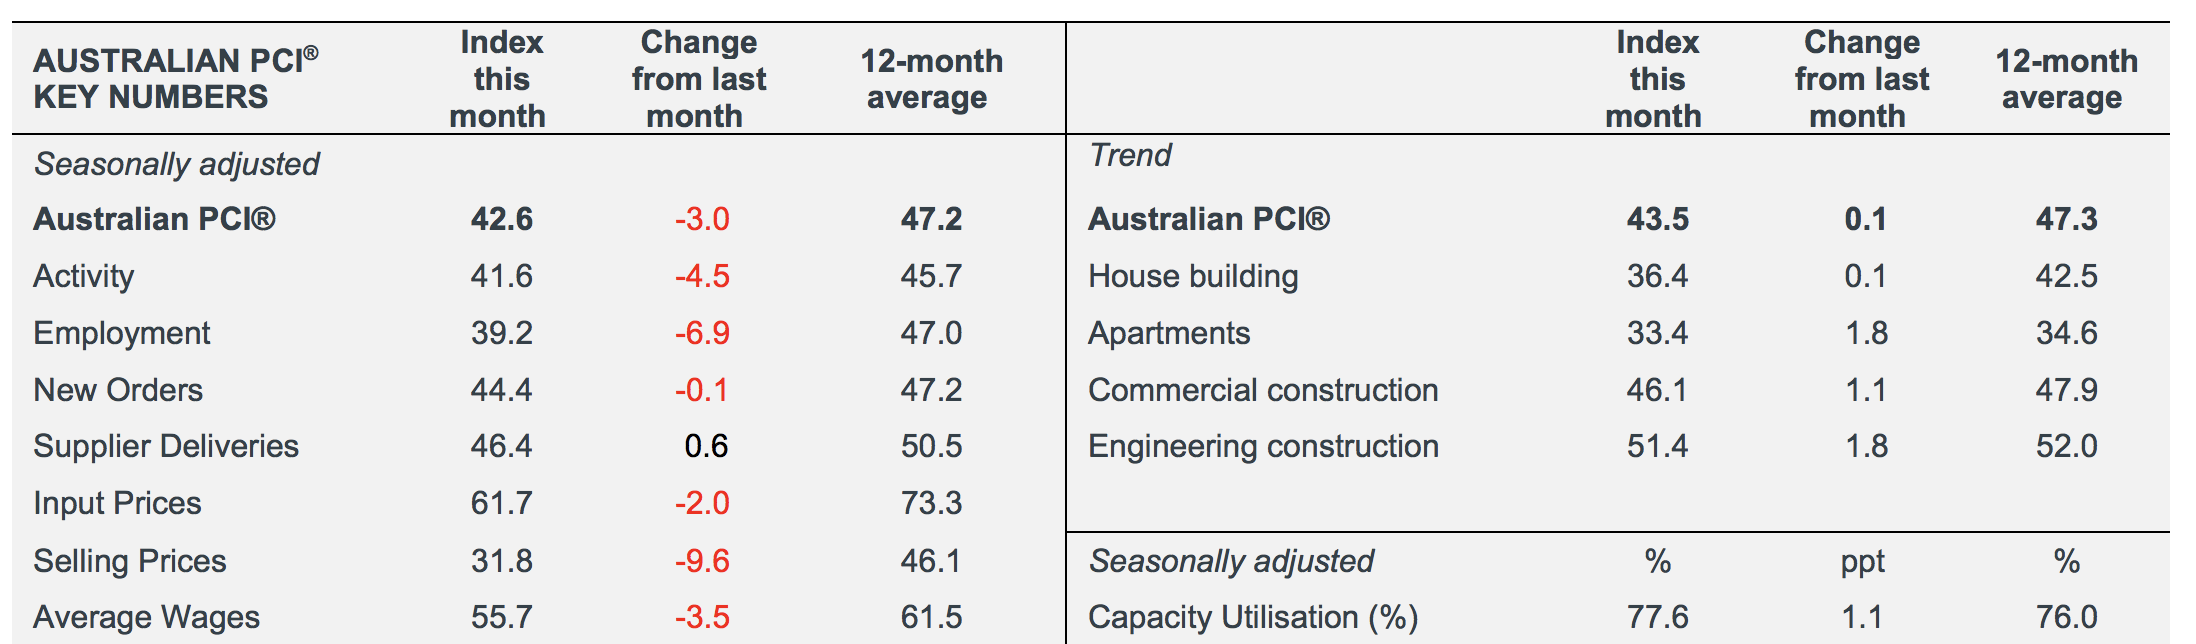 An Australian PCI reading above 50 points indicates construction activity expansion; below 50 that it is declining. The distance from 50 is indicative of the strength of the expansion or decline.